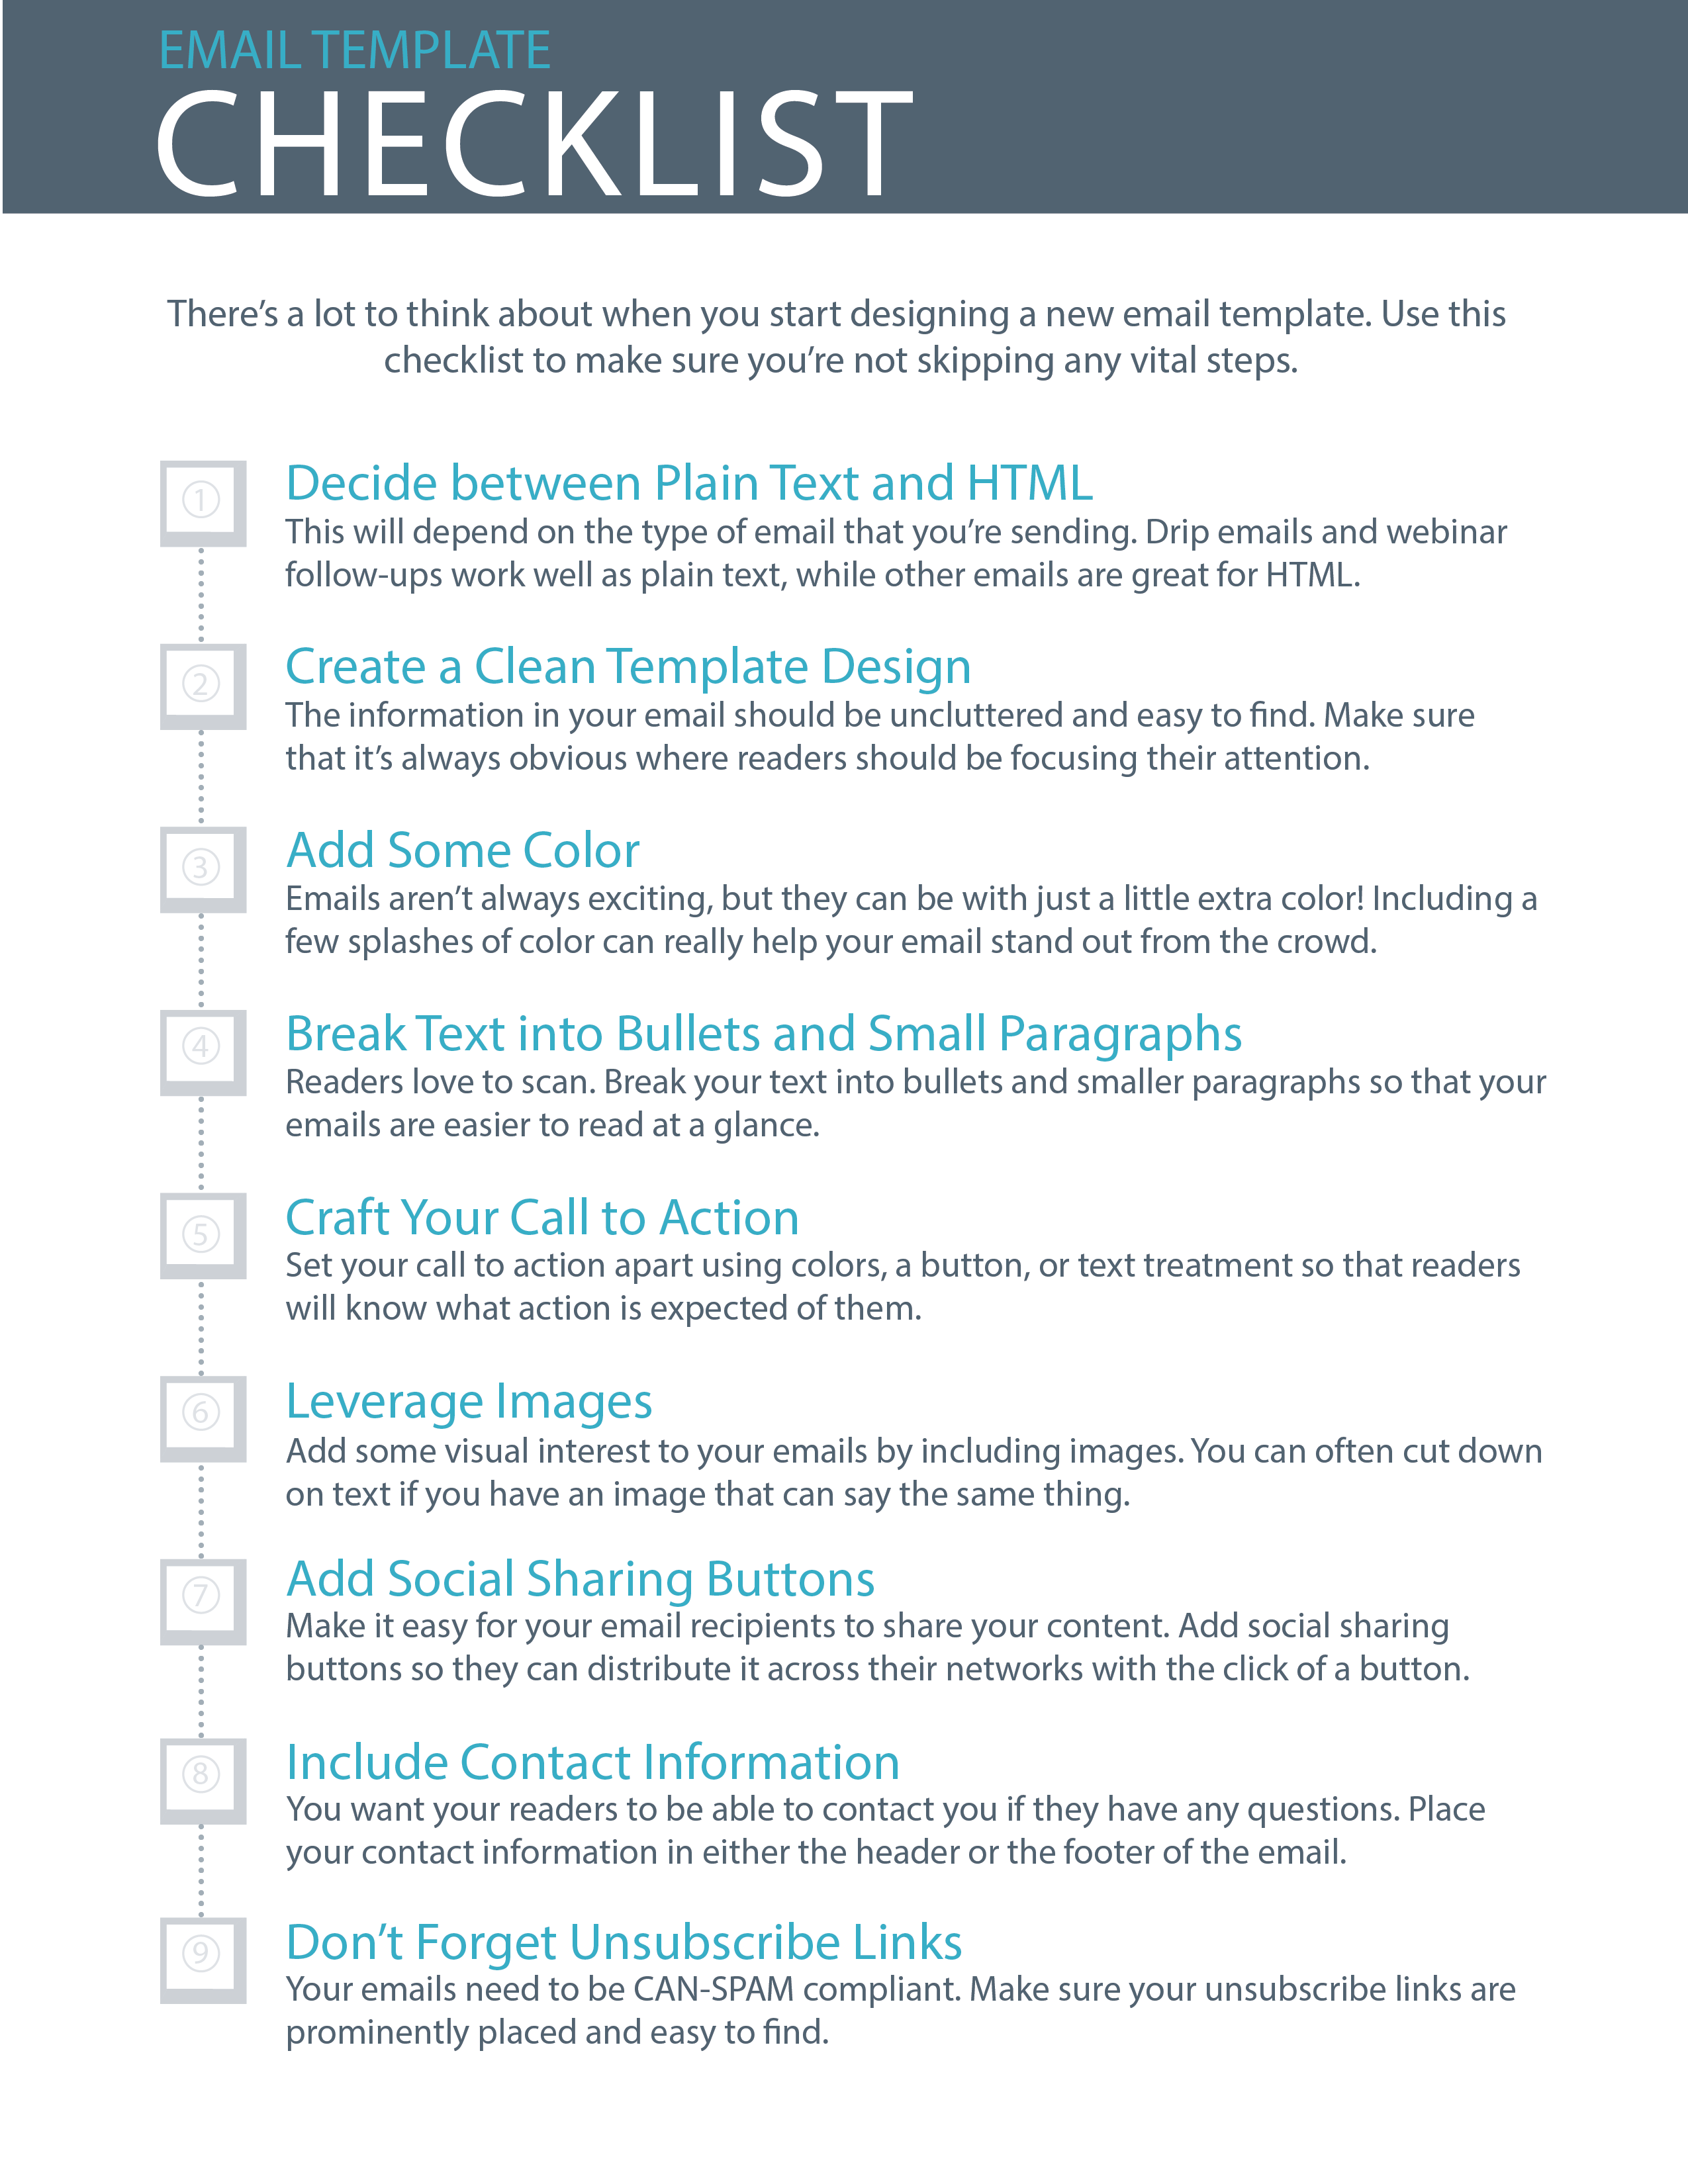 9 Essential Steps To Email Template Design Checklist